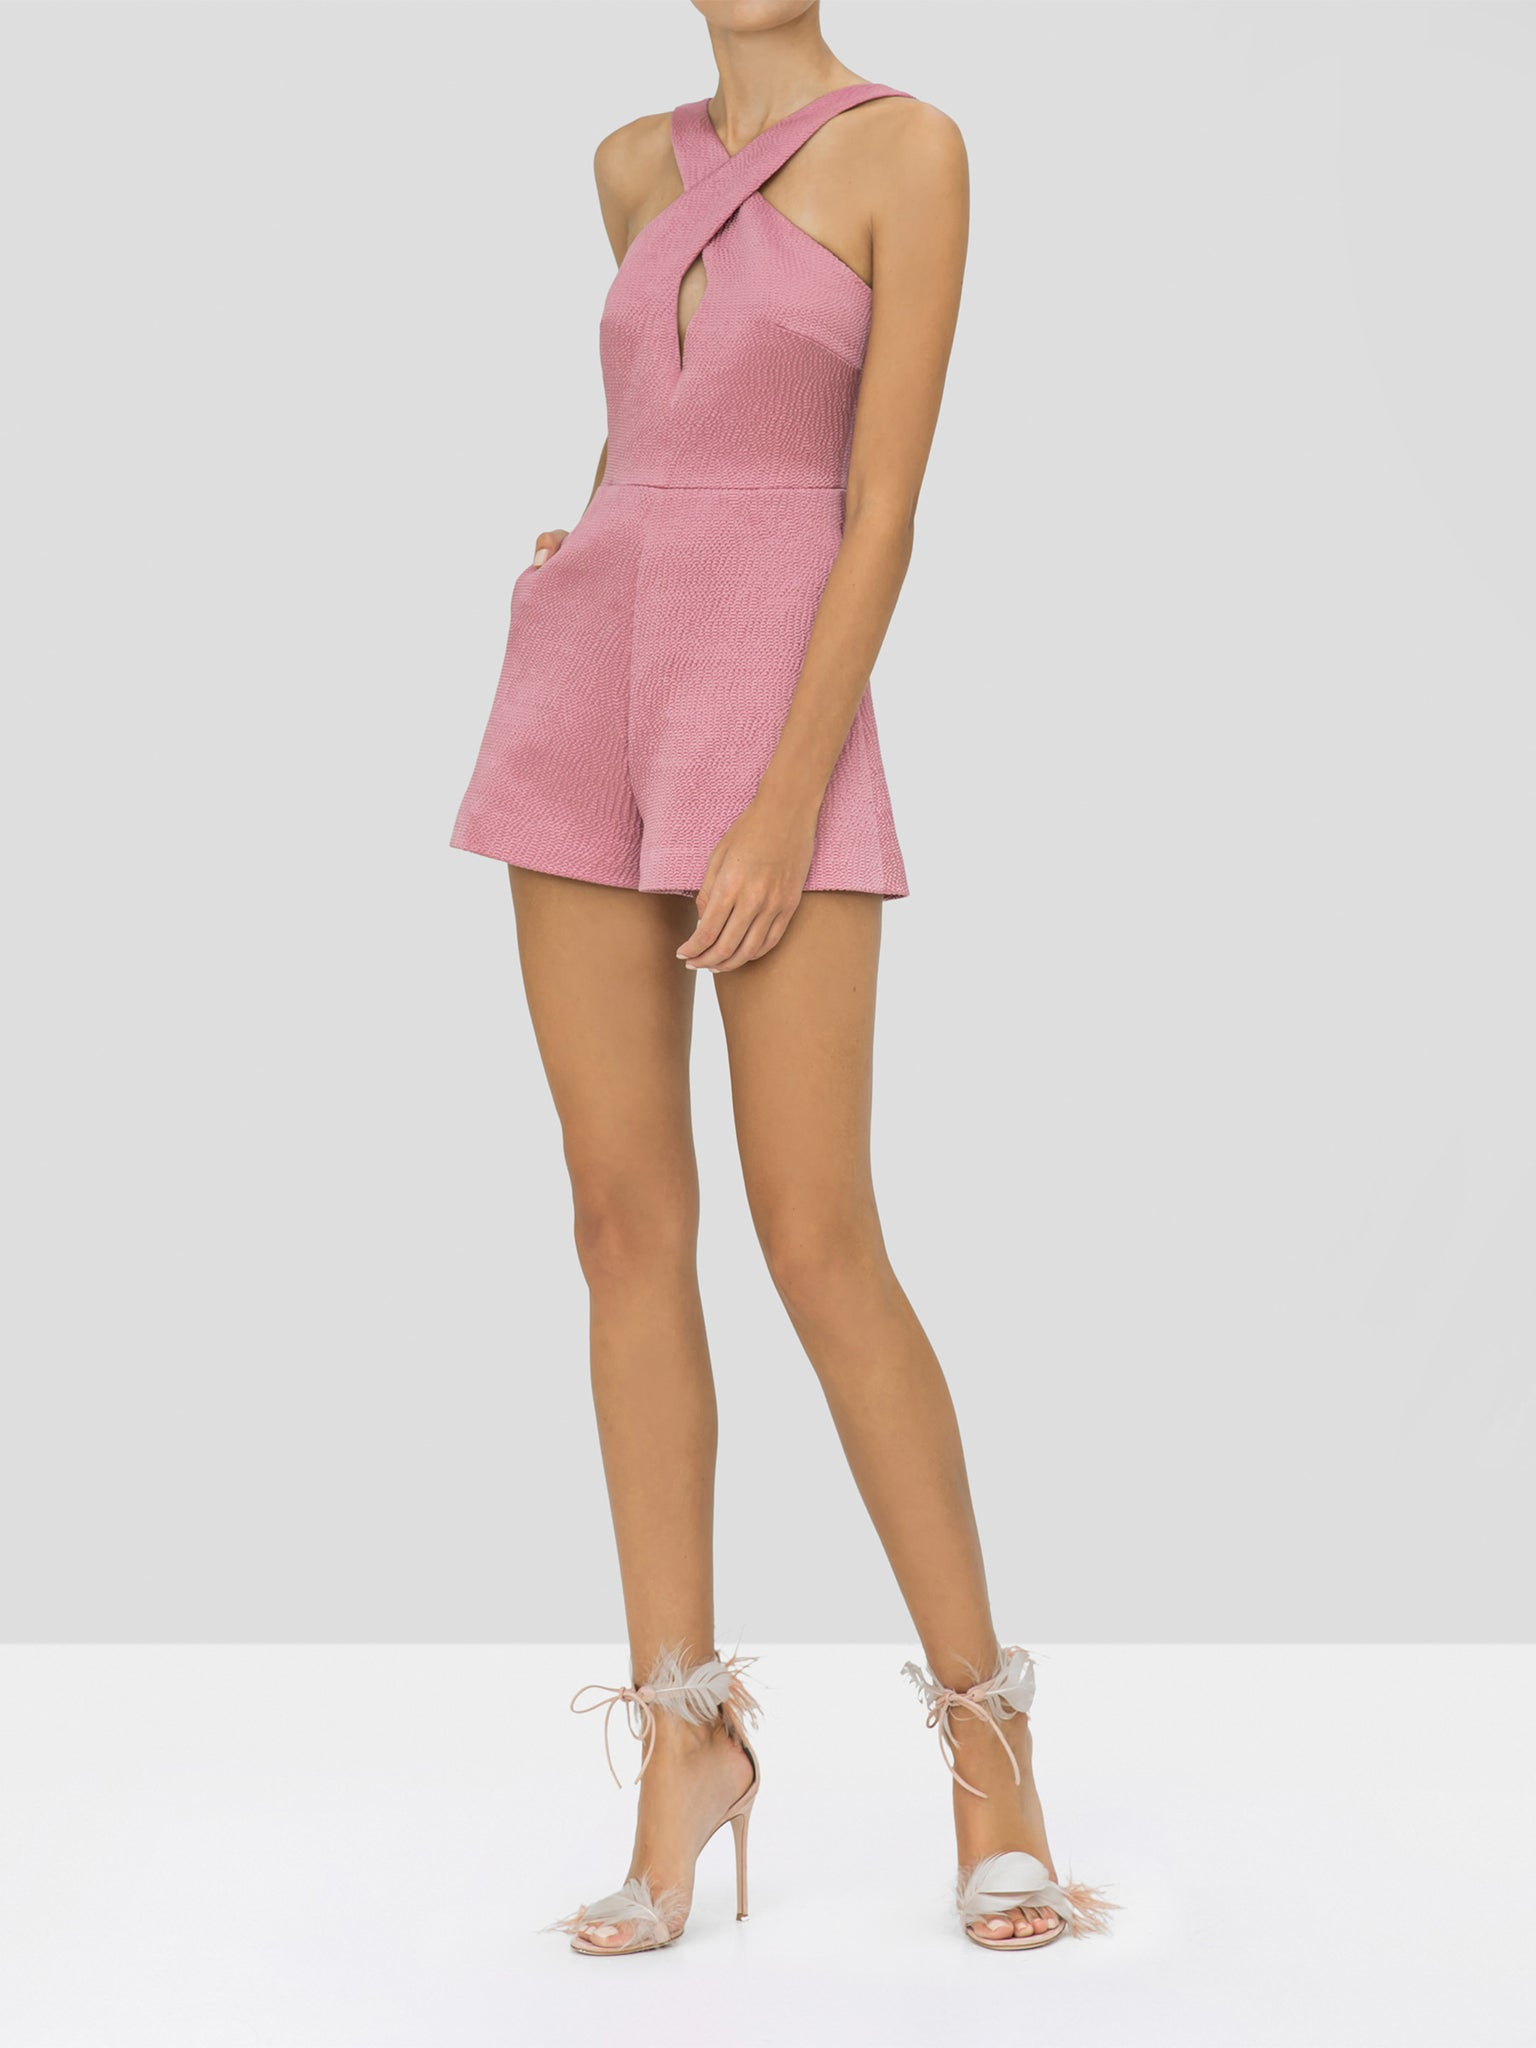 Alexis Emorie Romper in Violet from the Holiday 2019 Ready To Wear Collection